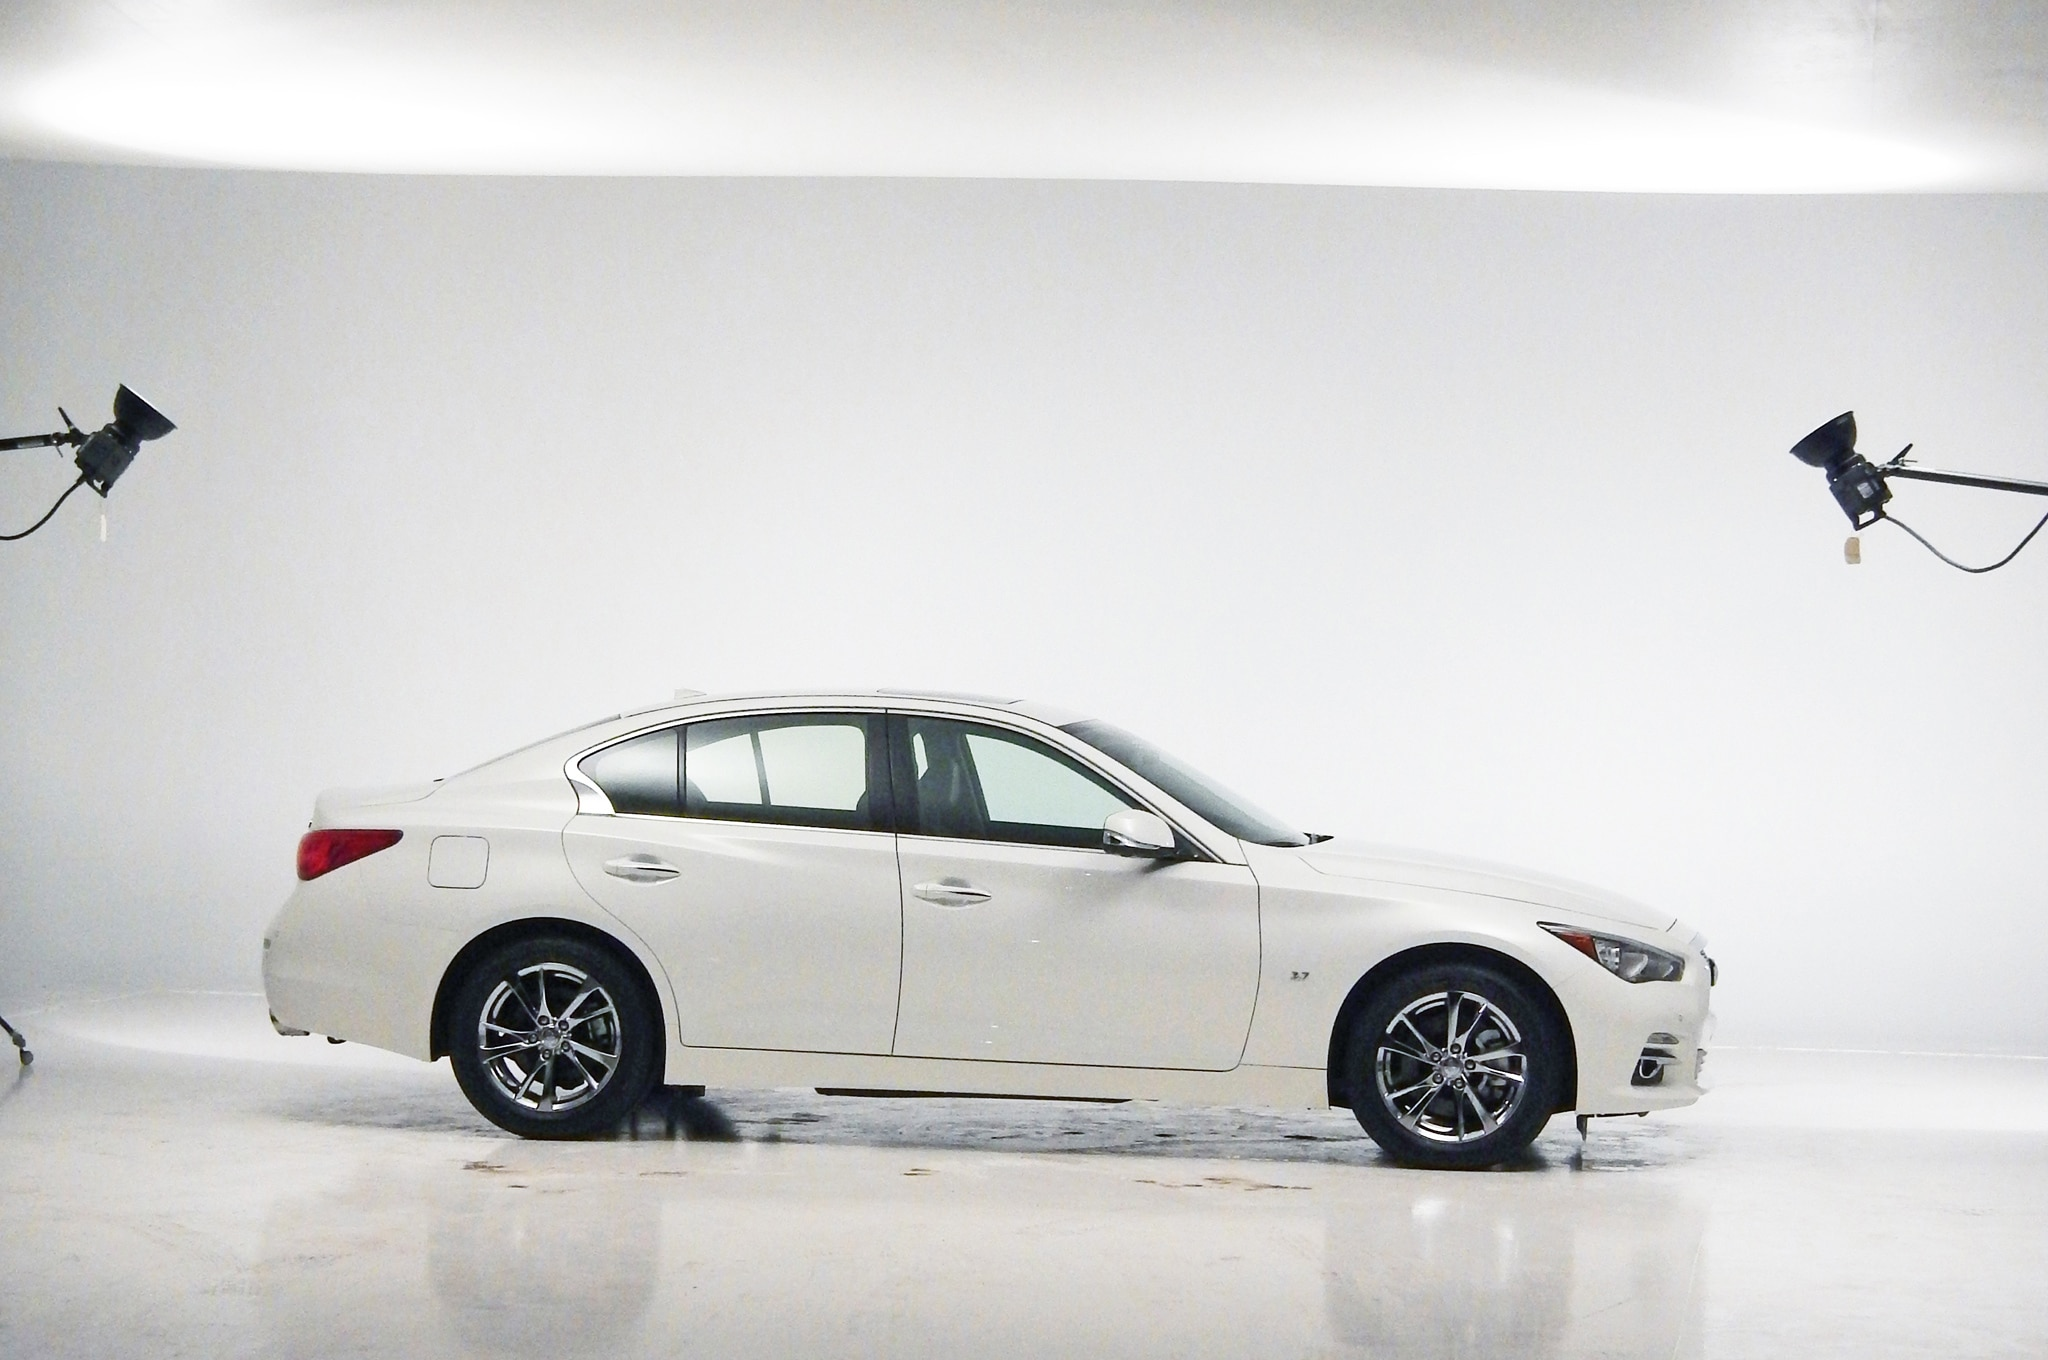 2014 Infiniti Q50 Profile Photo Shoot1